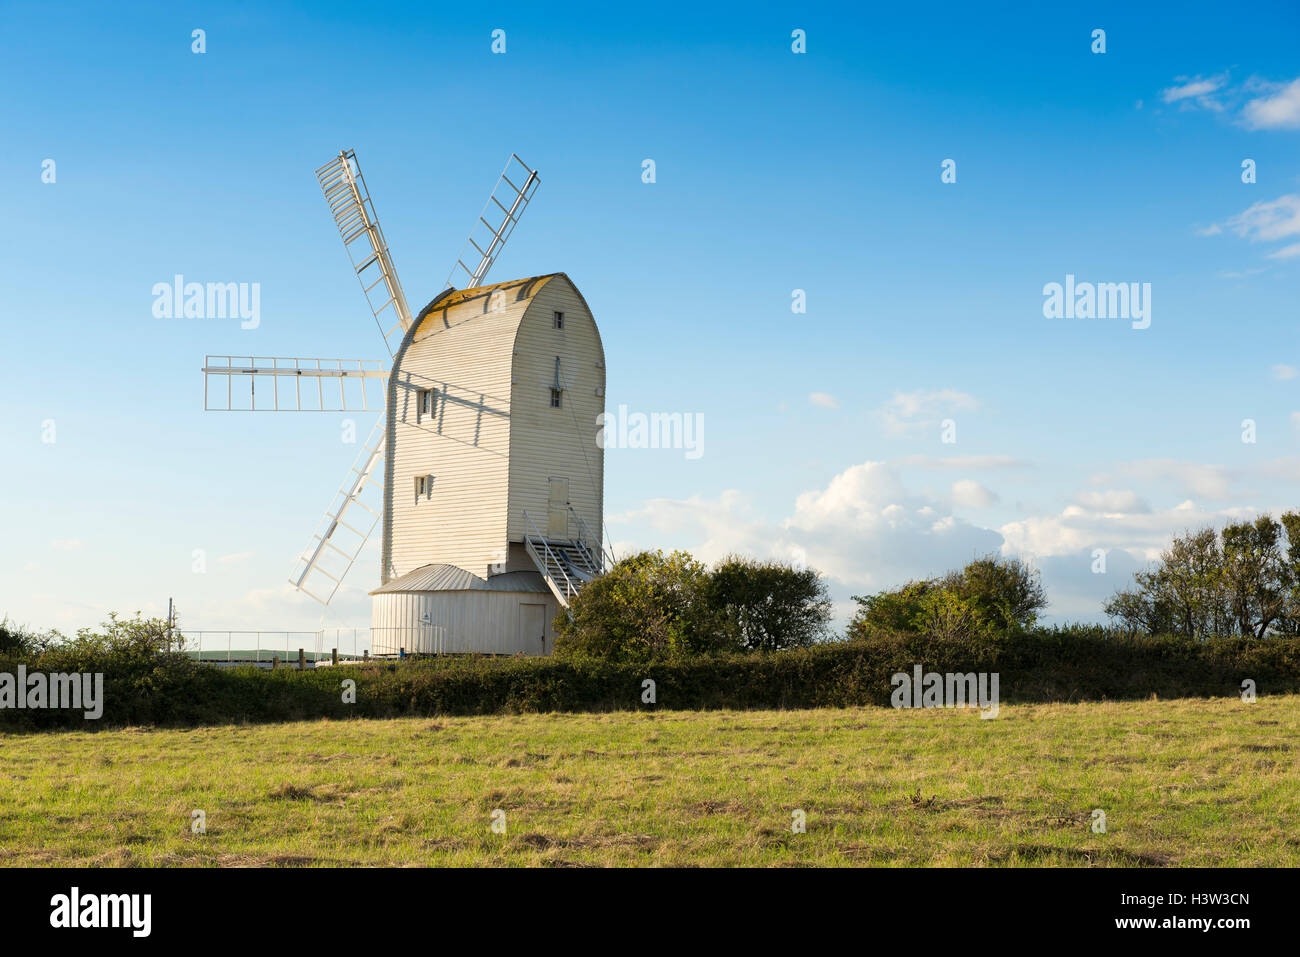 Ashcombe windmill to the east of the village of Kingston near Lewes, East Sussex, England, UK - Stock Image